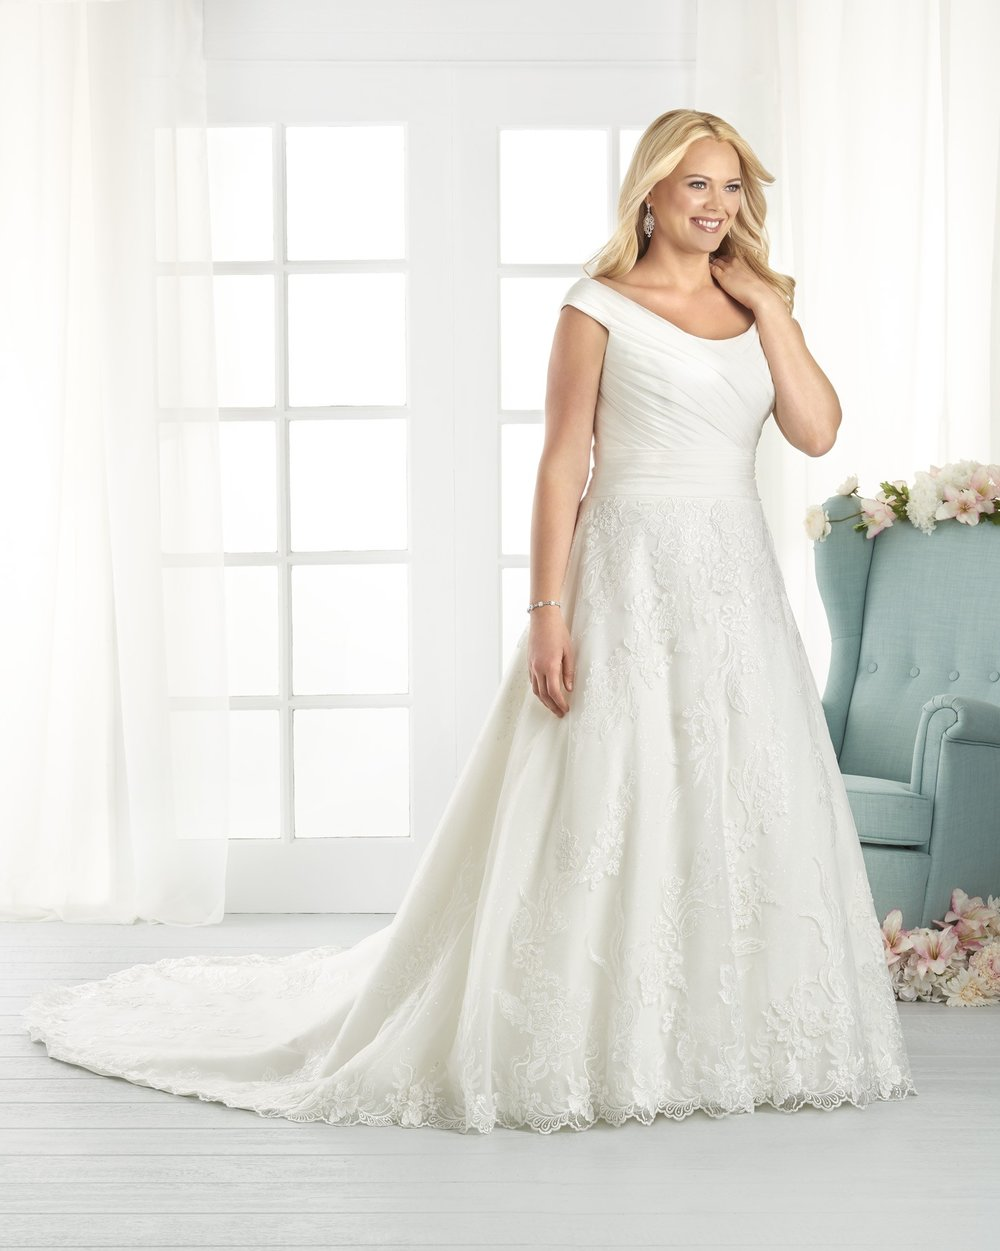 BonnyBridal-BridesbyYoung-PlusSizeWeddingDress-1811.jpg